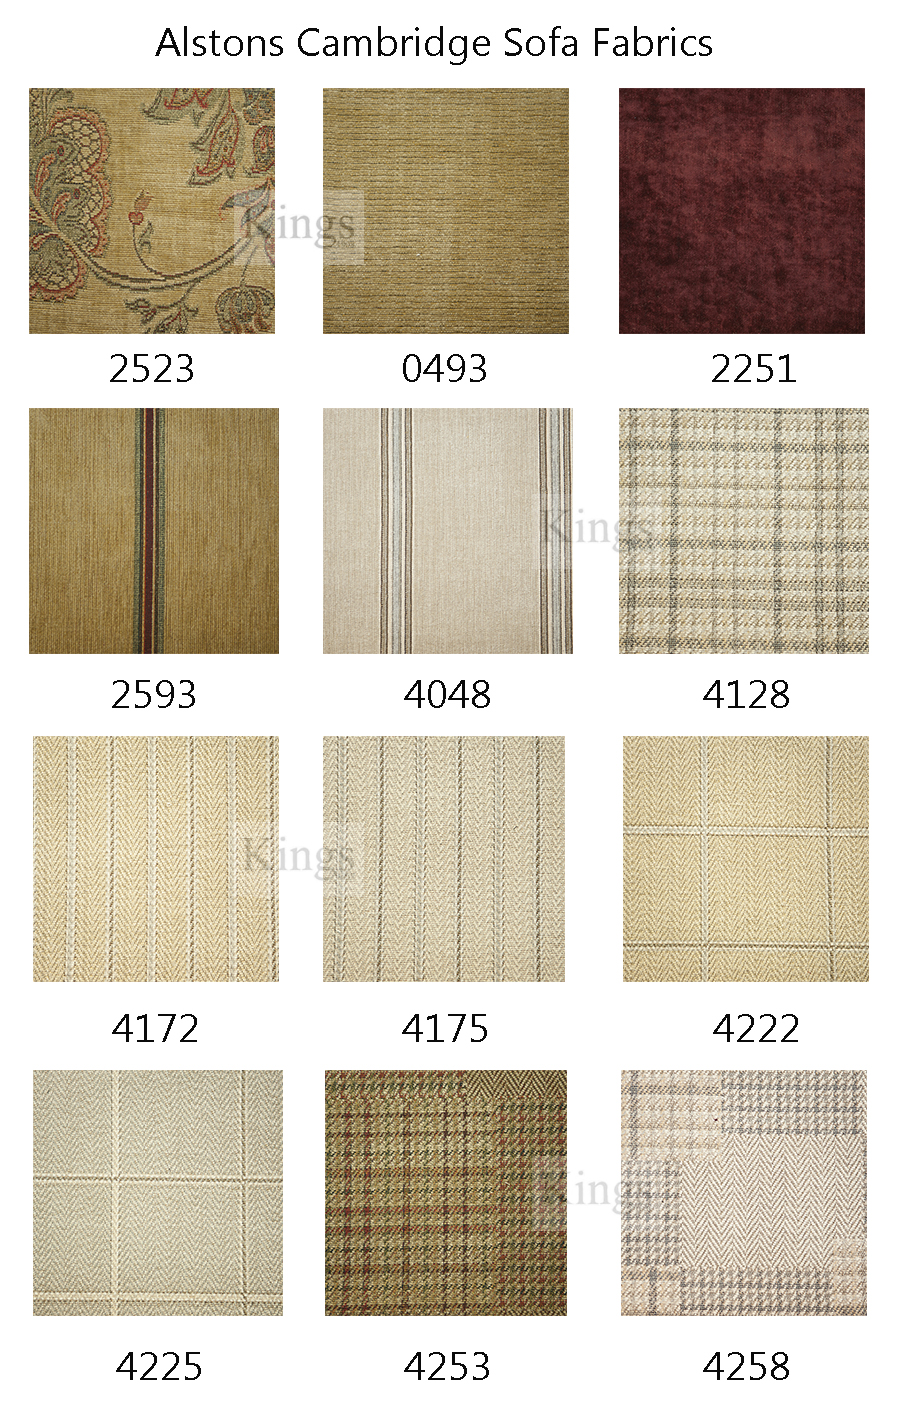 Alstons Cambridge Sofa Fabric Samples 1